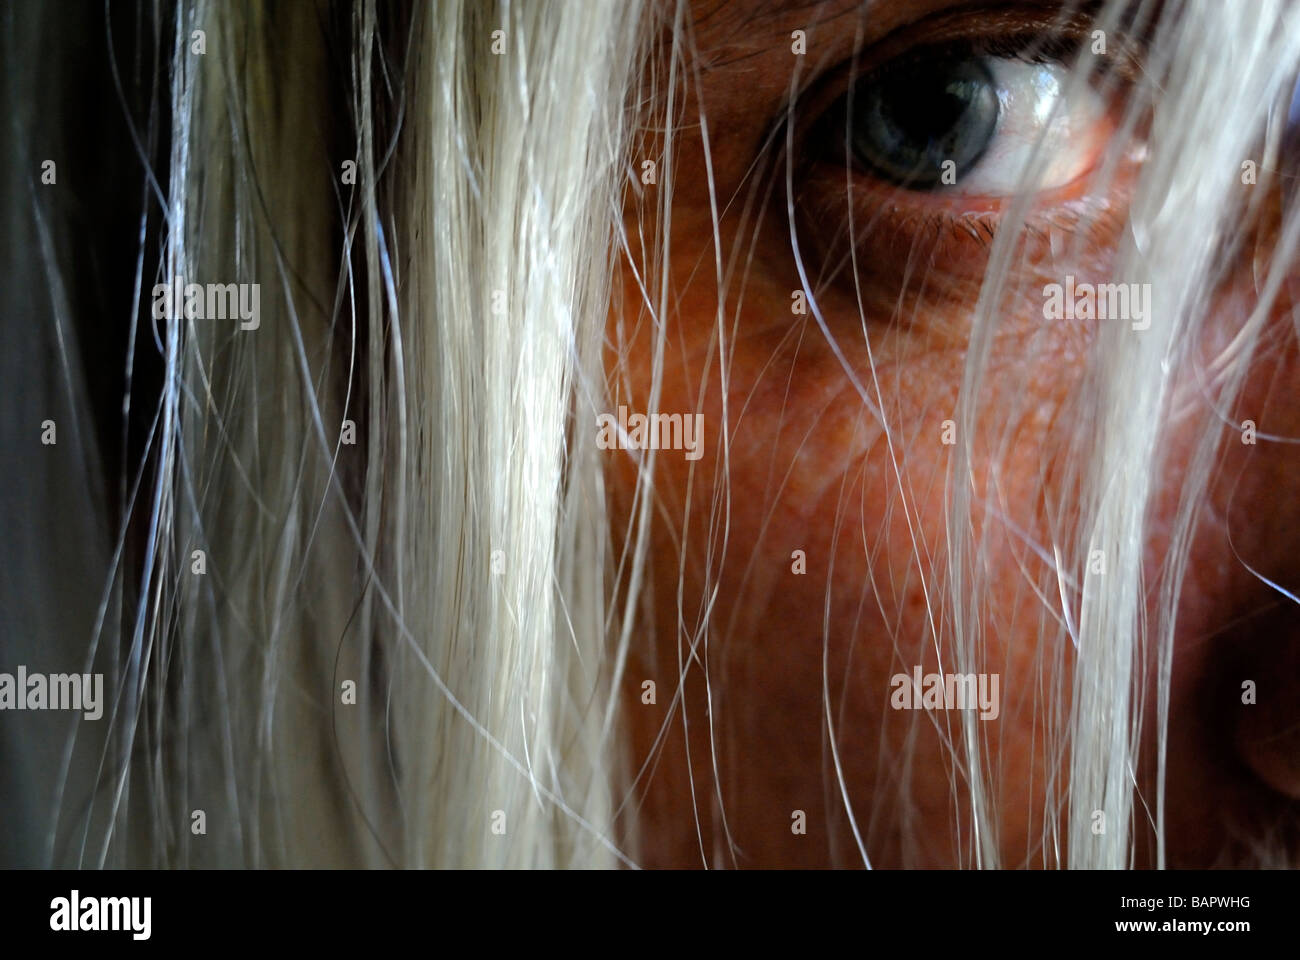 Middle aged man looking with one eye through long unkempt hair - Stock Image